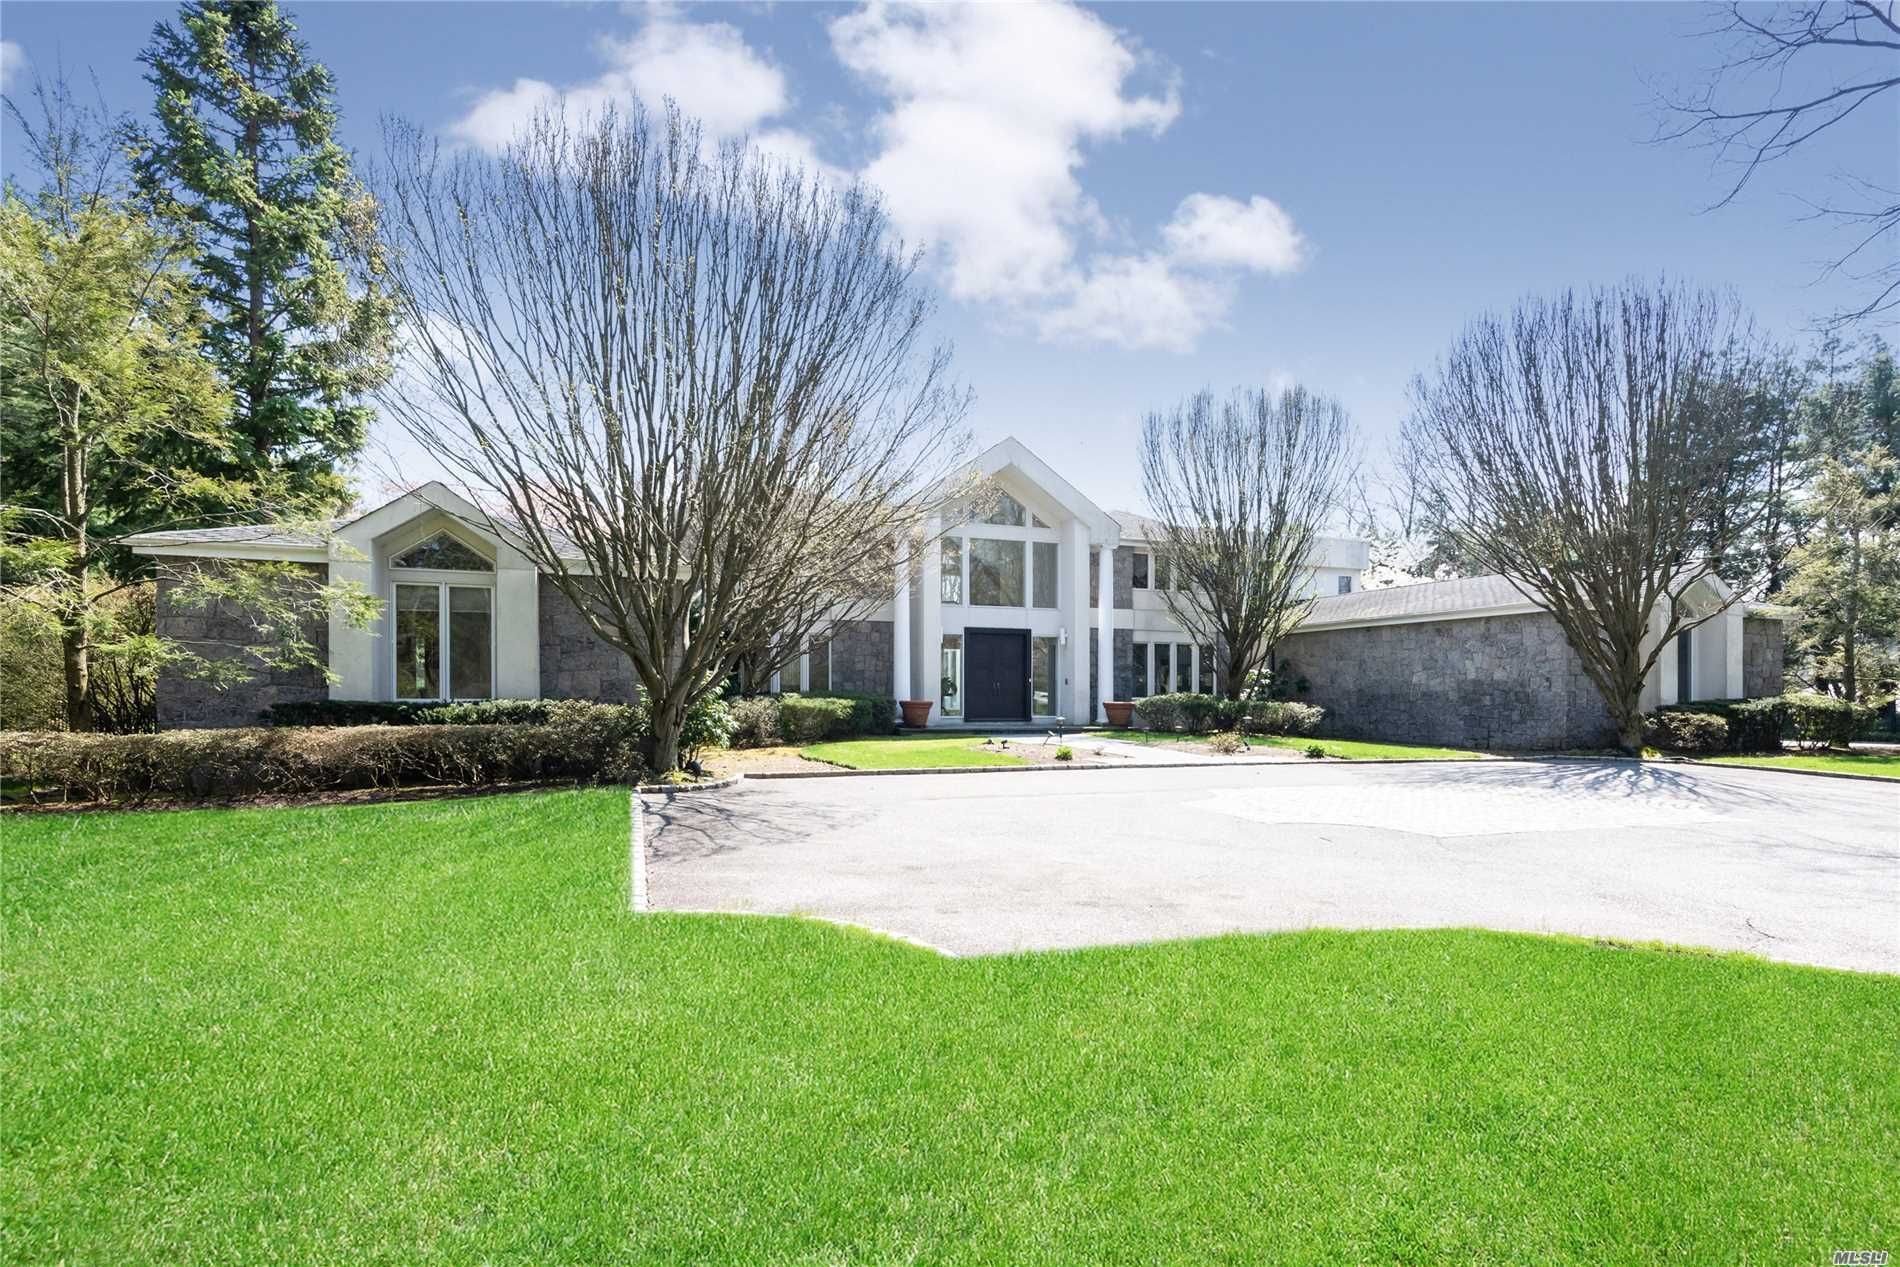 Chic, Modern And Custom Built Home To Suit Your Every Need, This Sprawling Home On Over 4 Acres,  Stunning Old Westbury Acres With An In-Ground Pool And A Private Tennis Court New Basement, Detail Amenity And System In This Home Was Carefully Considered And Globally Sourced To Elevate Day-To-Day Living In Elegant Yet Welcoming Surroundings. The Result: 97 Wheatley Is The Rare Example Of Form And Function Harmoniously Coexisting With Twin Circular Spiraling Staircases. All Info. Ntb Verified.